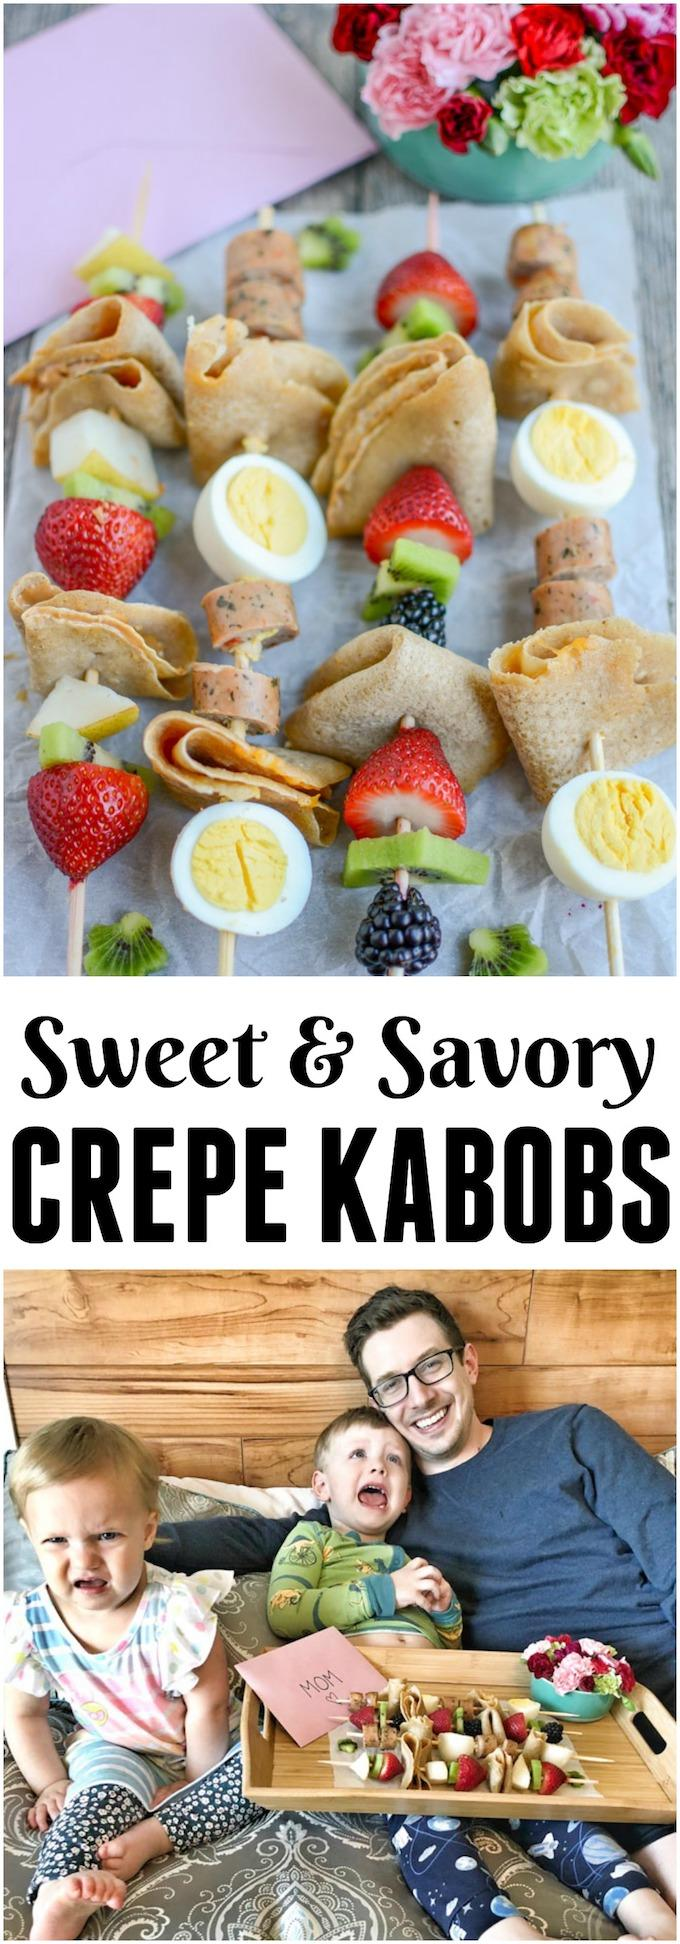 (#AD) These Crepe Kabobs are a great way to get kids in the kitchen and they'd make the perfect Mother's Day treat! Make one quick stop at @Meijerstores to grab all the ingredients, plus a card, flowers and even a cute tray to serve her breakfast in bed!